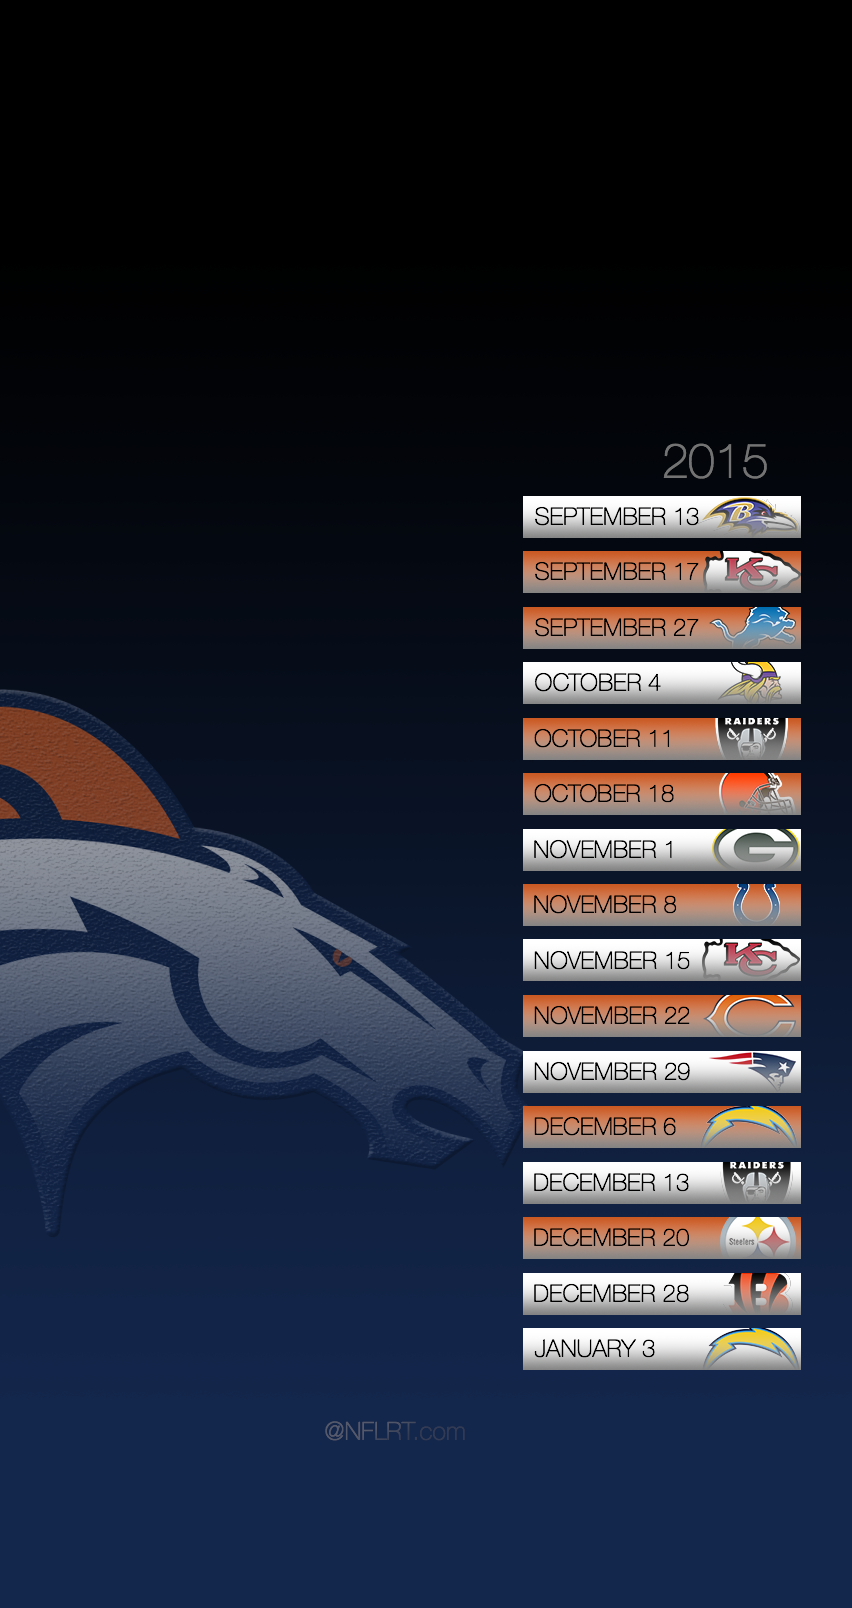 2015 NFL Schedule Wallpapers   Page 7 of 8   NFLRT 852x1608